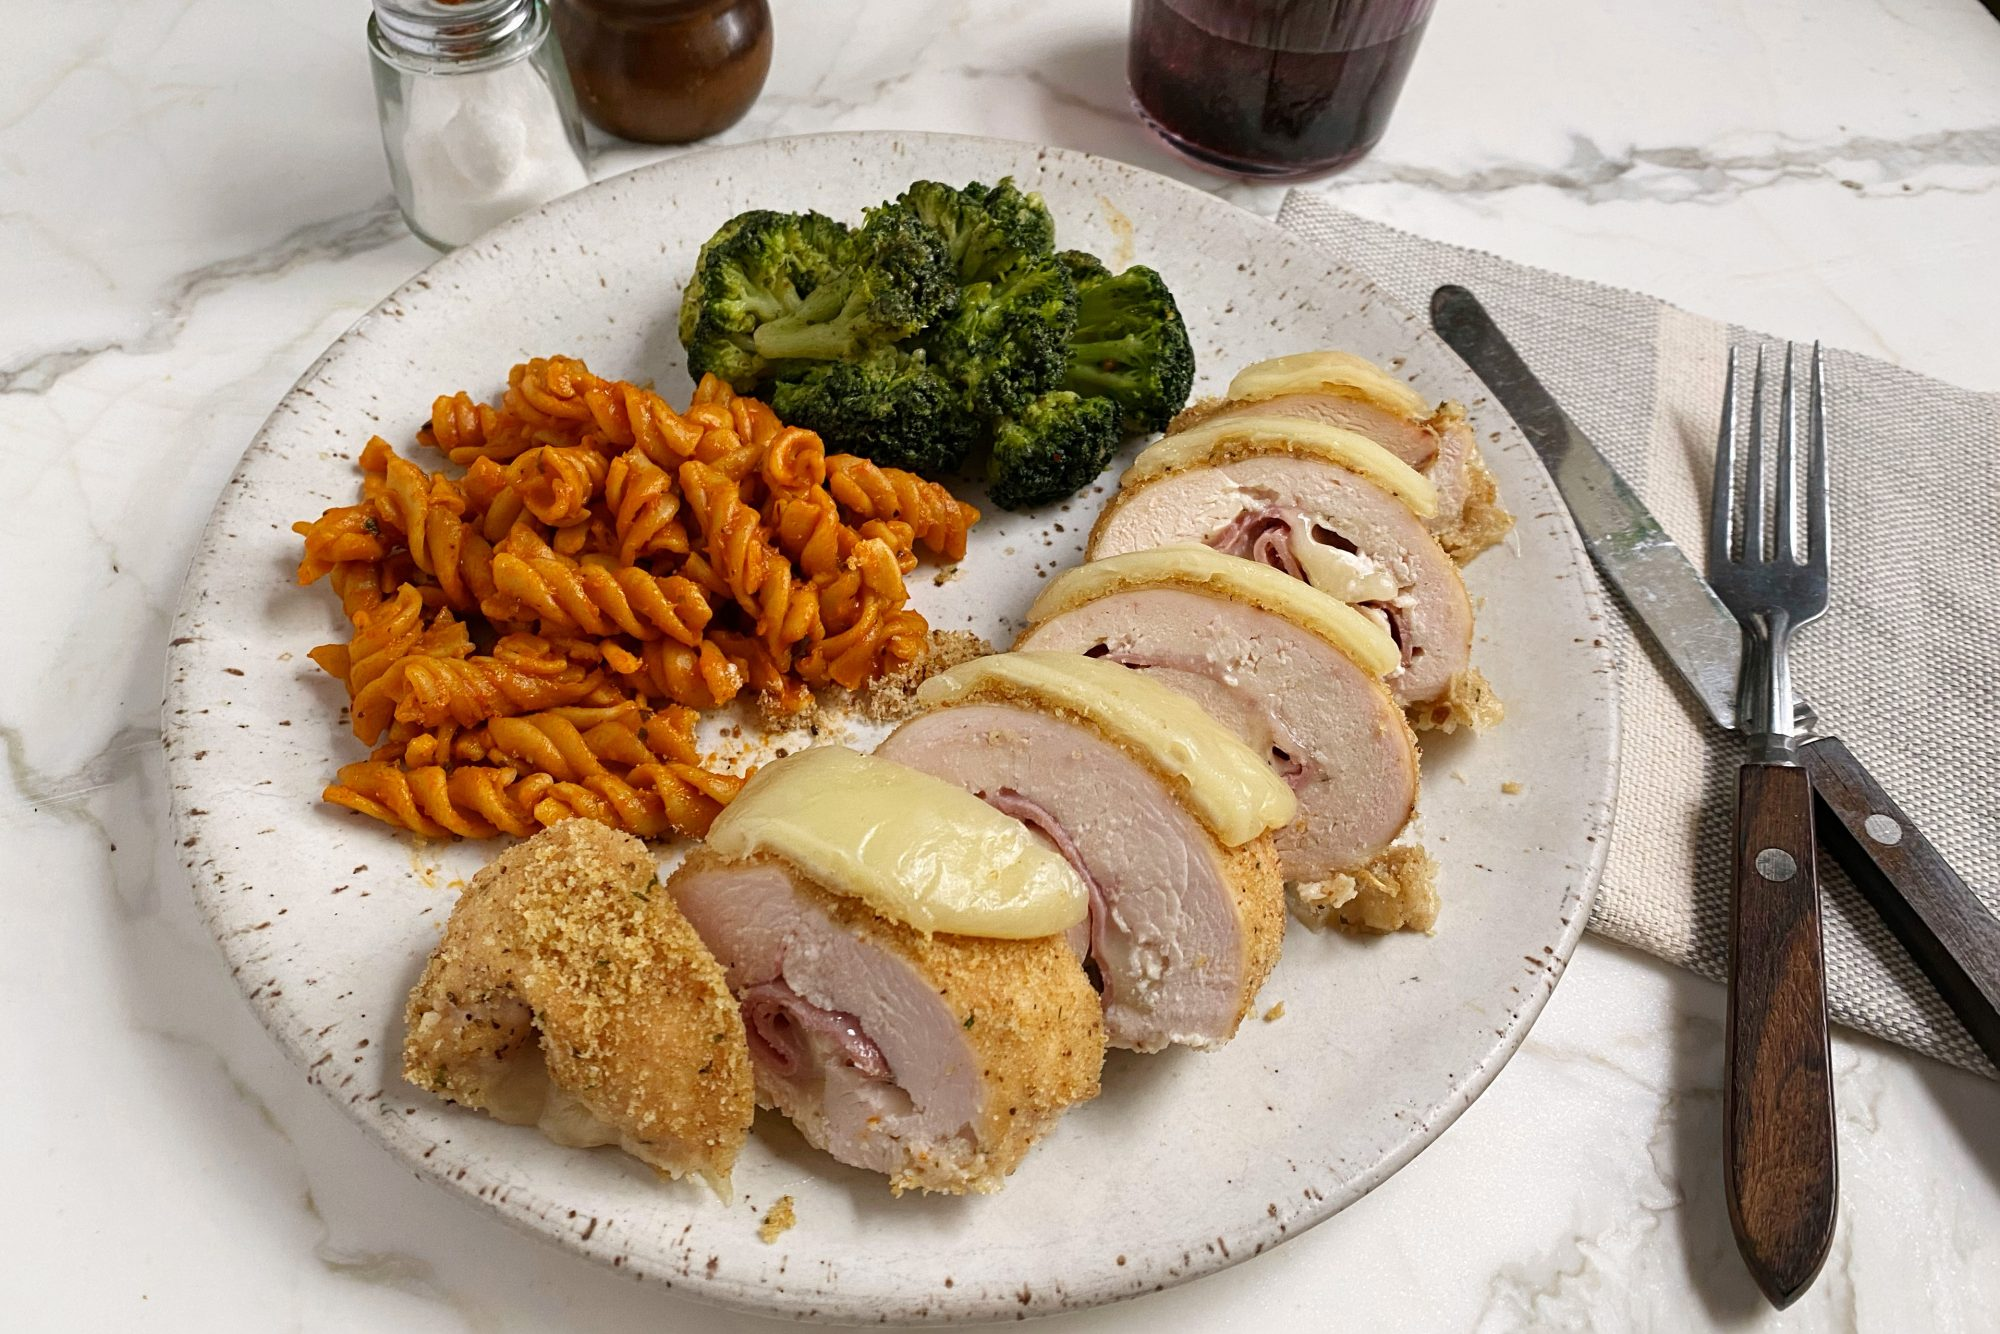 Sliced Chicken Cordon Blue on a dinner plate served with pasta and broccoli